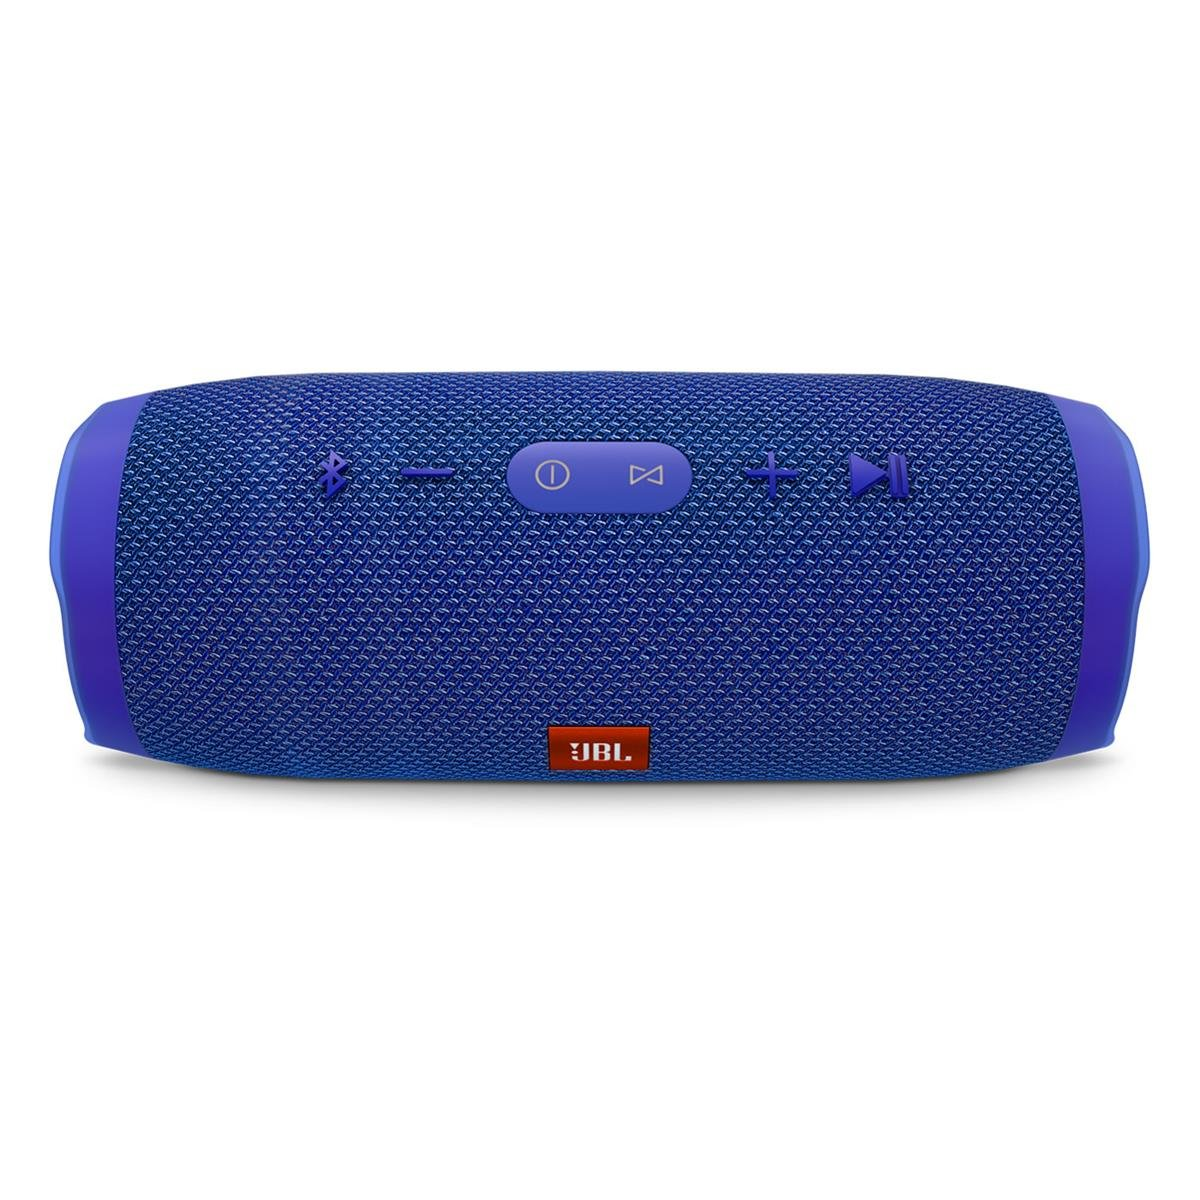 JBL Charge 3 Waterproof Bluetooth Speaker -Blue (Certified Refurbished) by JBL (Image #2)